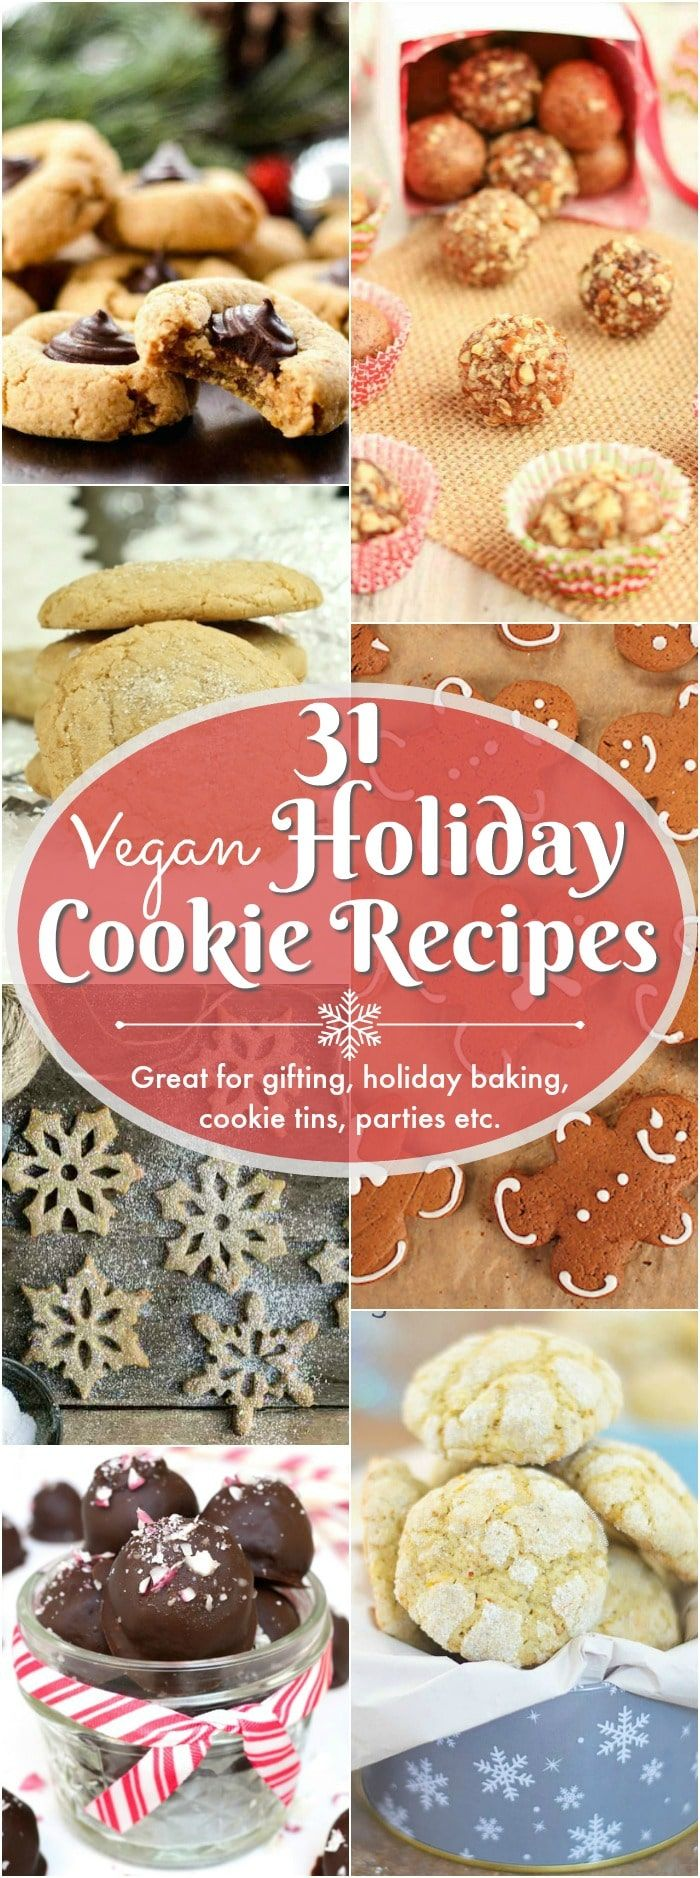 31 holiday favorite cookie & truffle recipes. Some healthy. Some decadent. But, they're all crowd pleasers! Fill up those festive tins, gift boxes and cookie platters with a variety of vegan holiday cookies and truffles! Plenty of gluten-free options too!